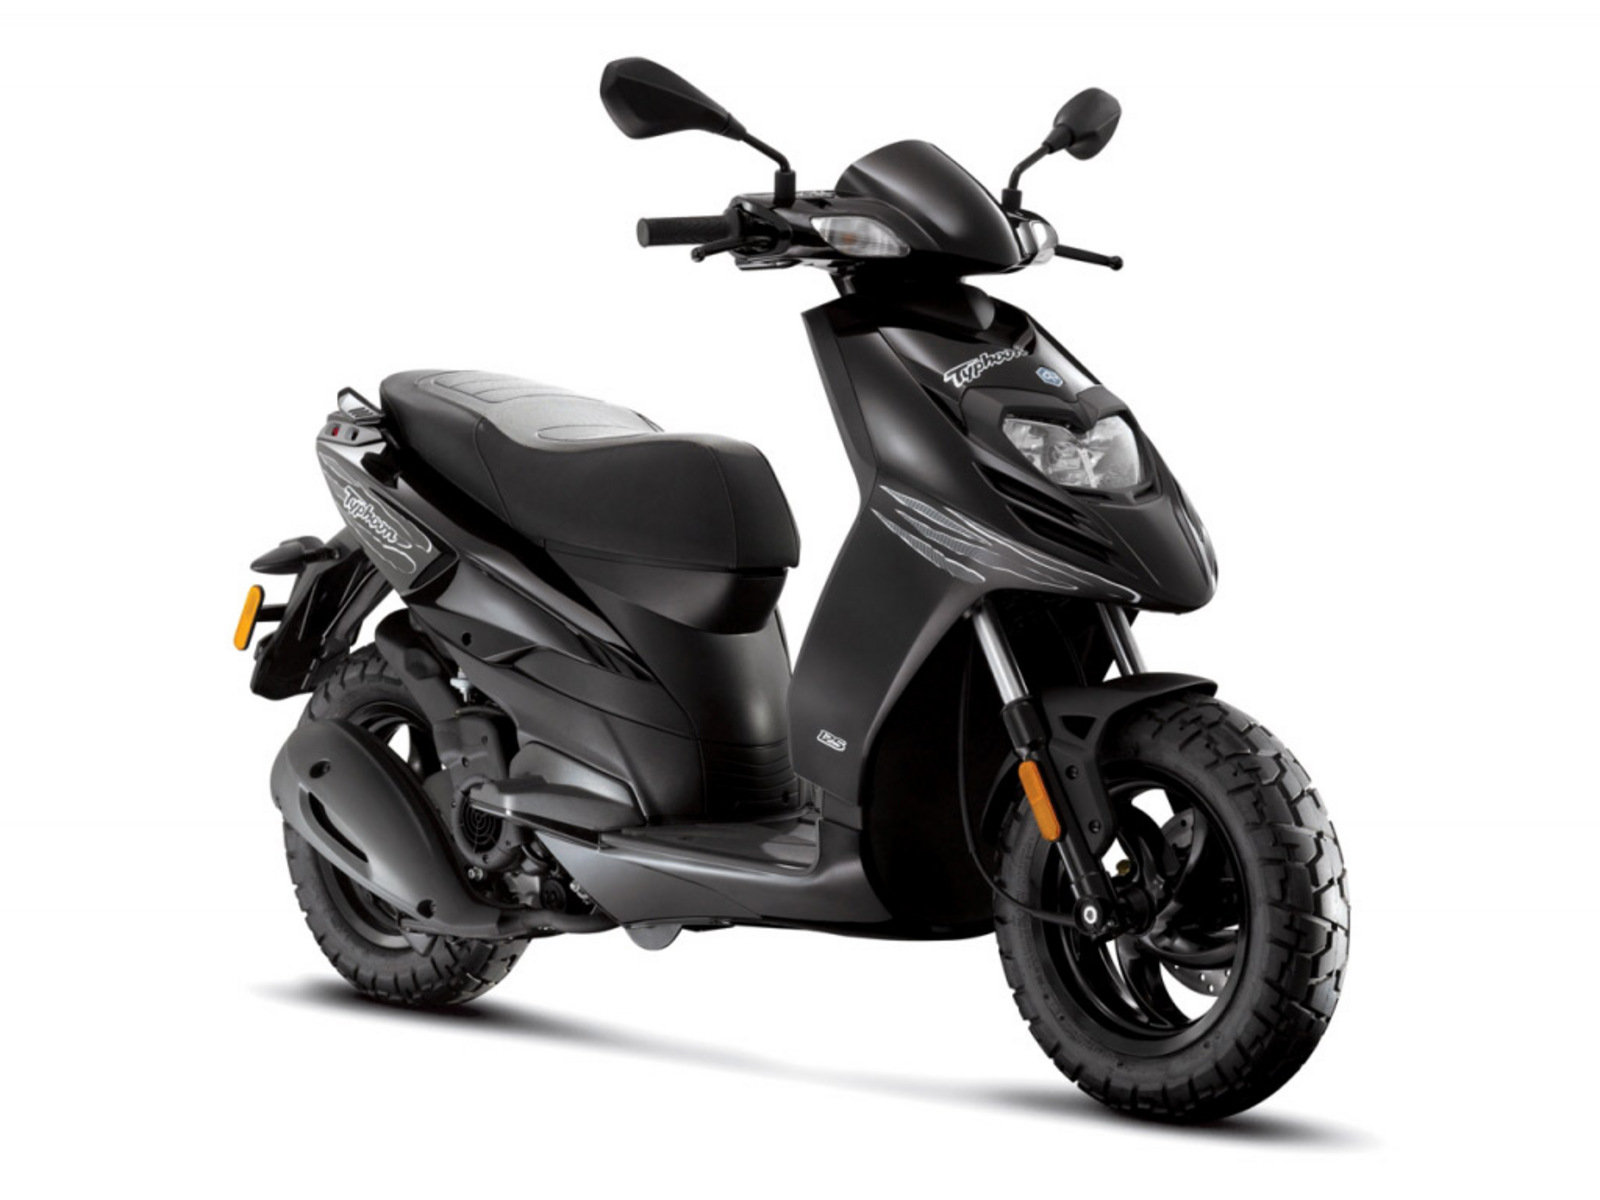 2013 piaggio typhoon 125 review top speed